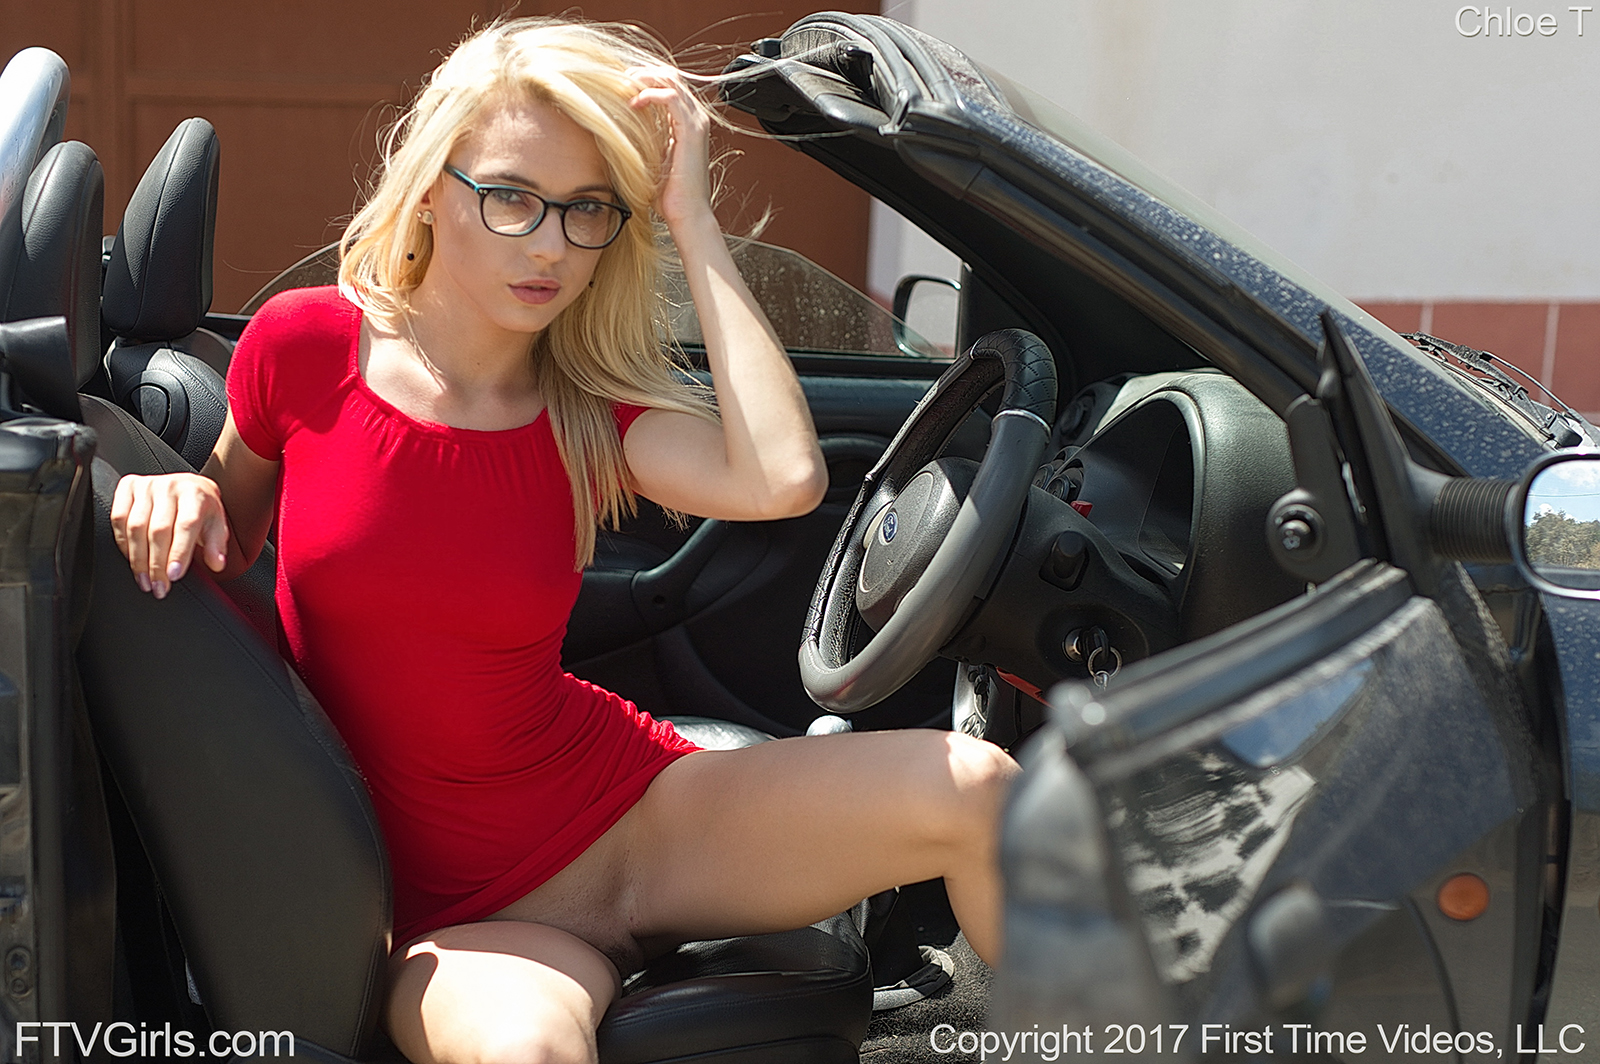 geek blonde wanks herself off after a stressful shopping afternoon #10